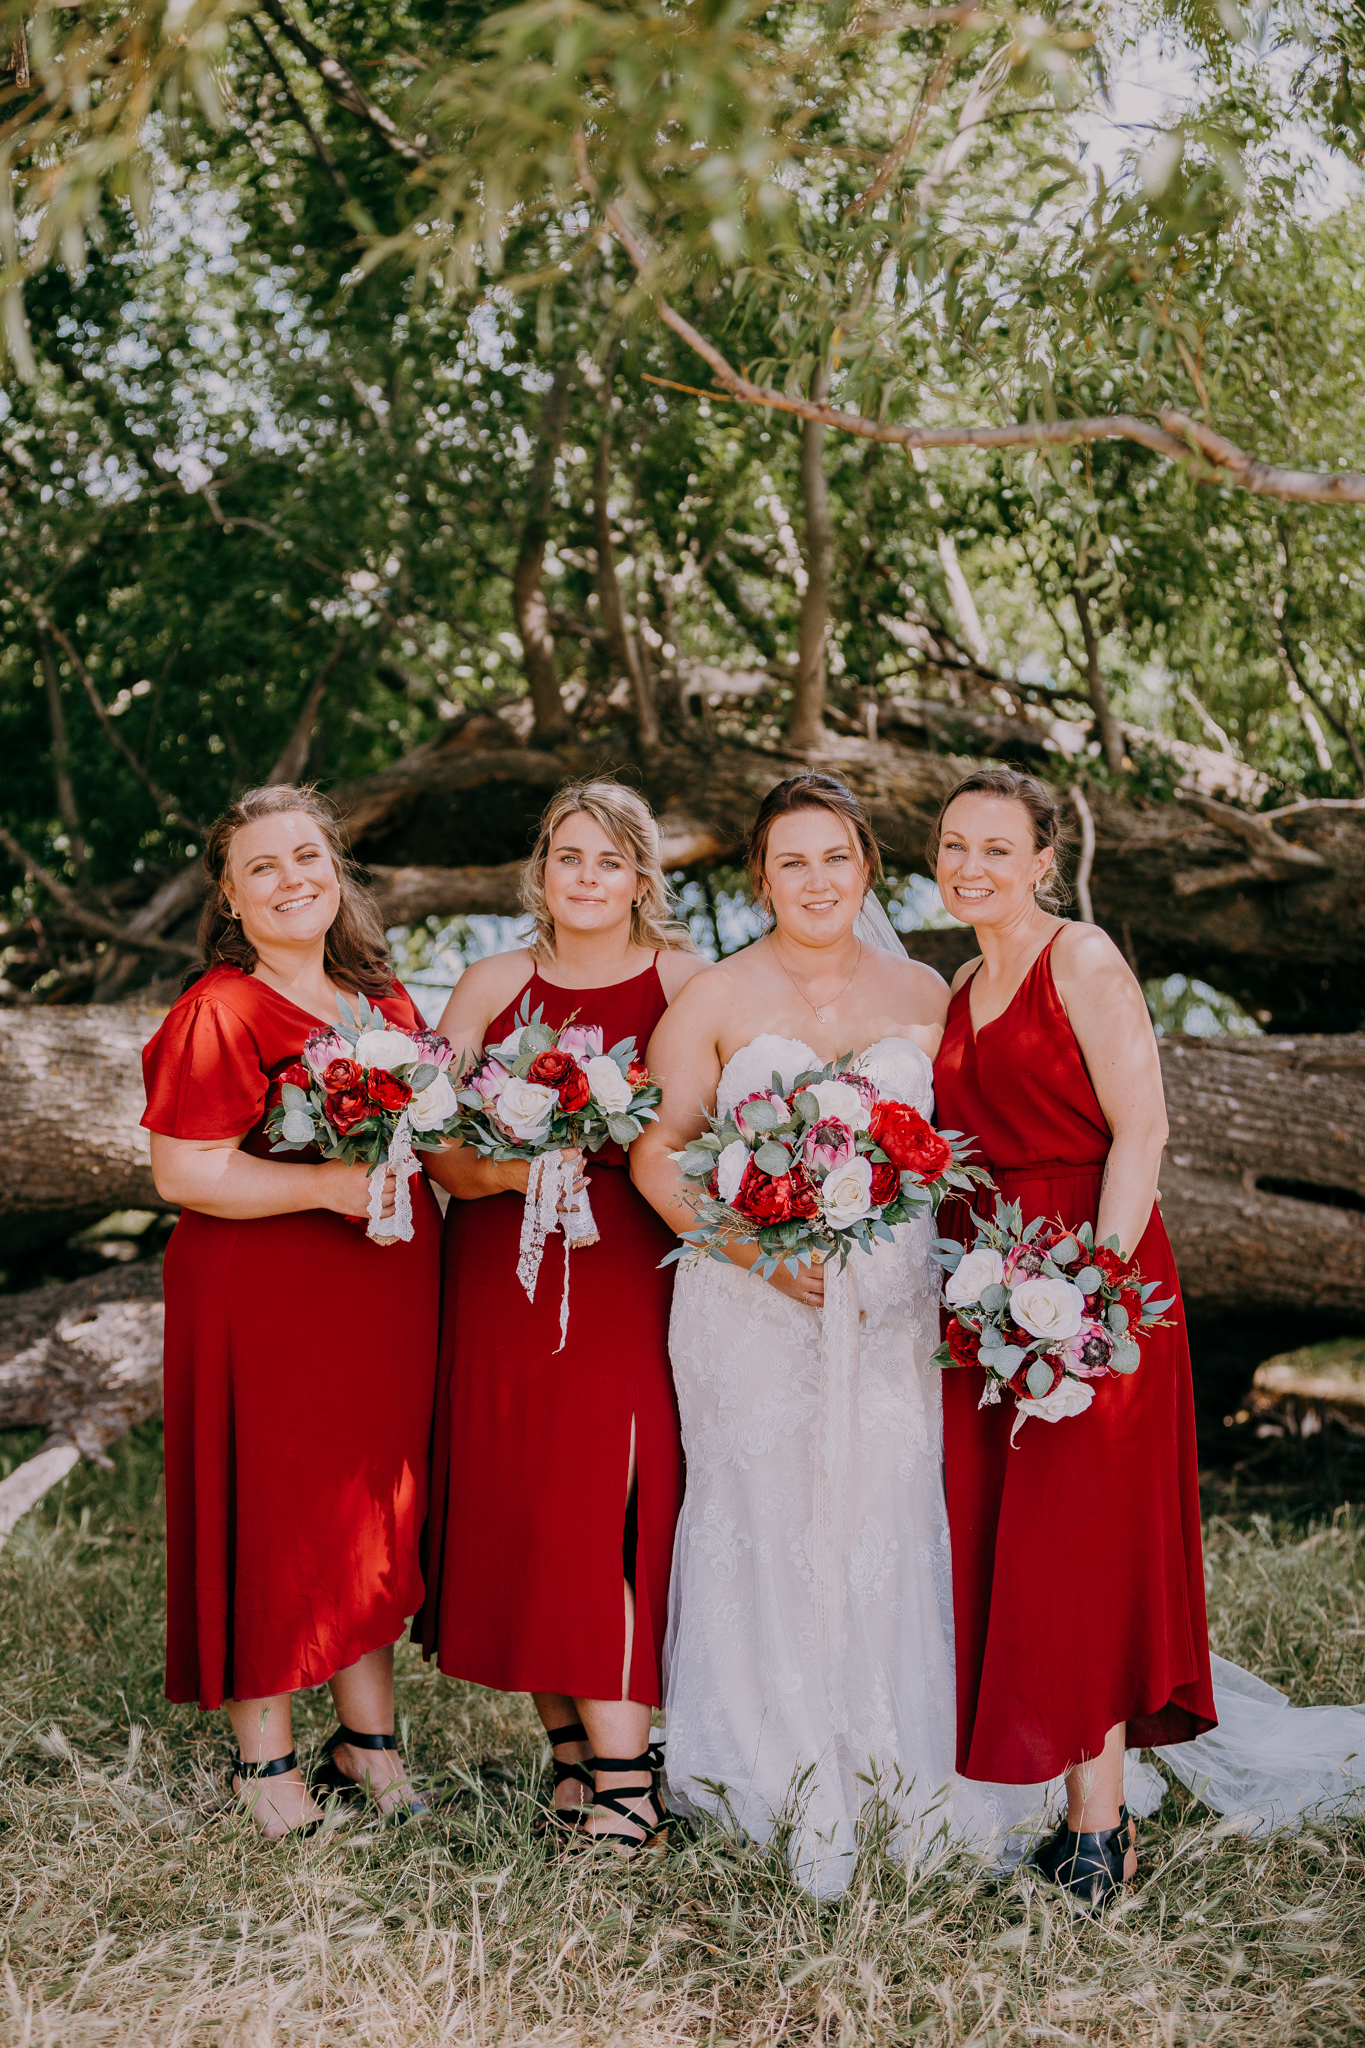 Evolution bridesmaids